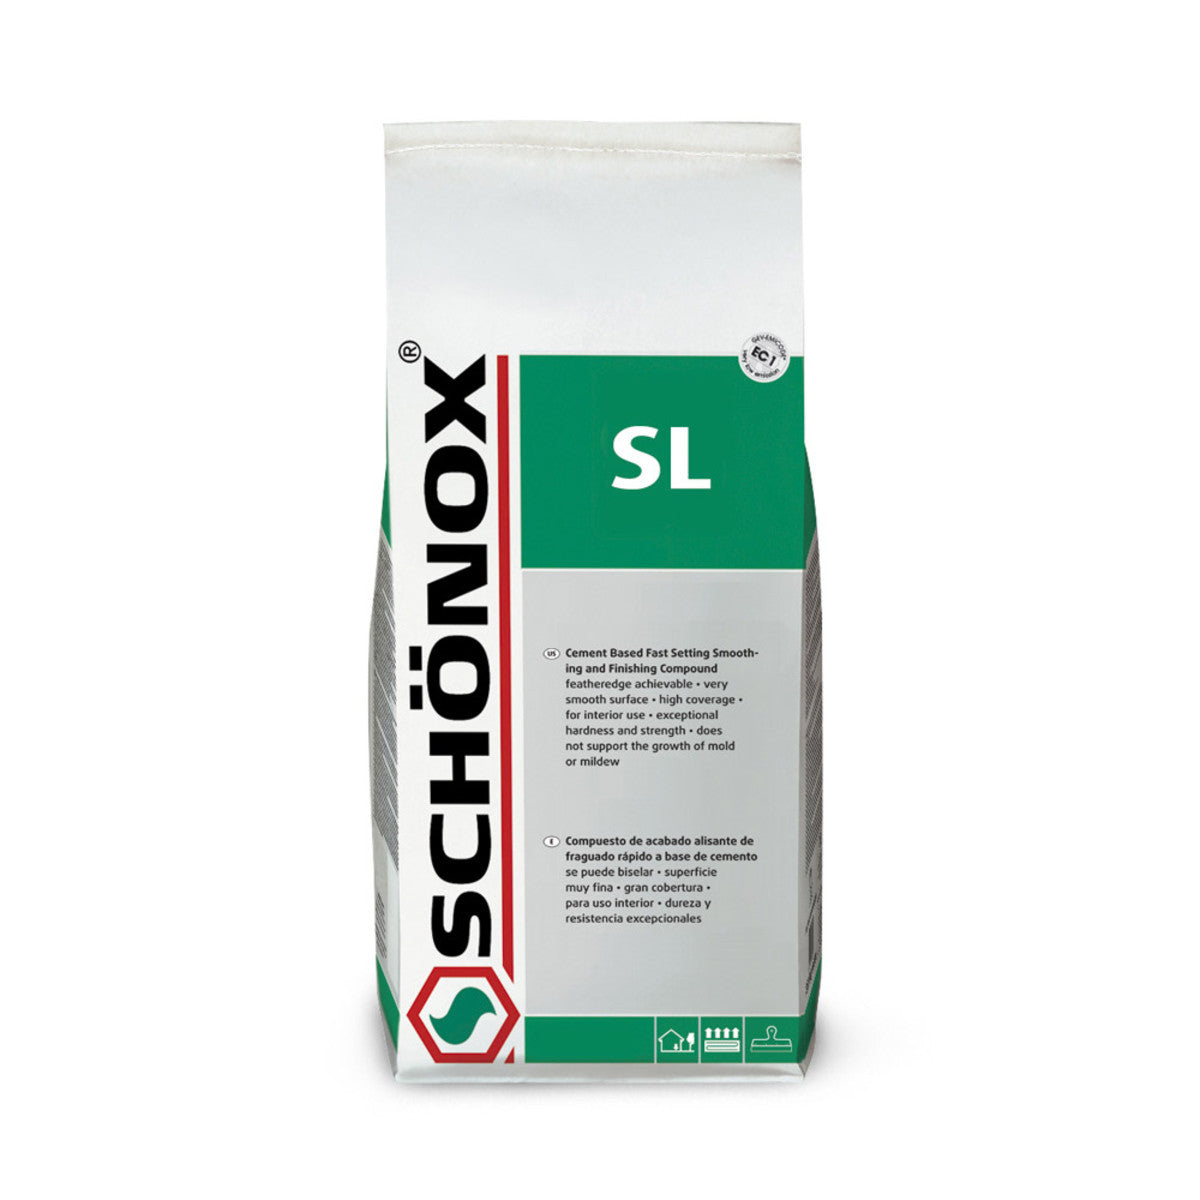 Schönox SL Finishing Compound - 10 lb